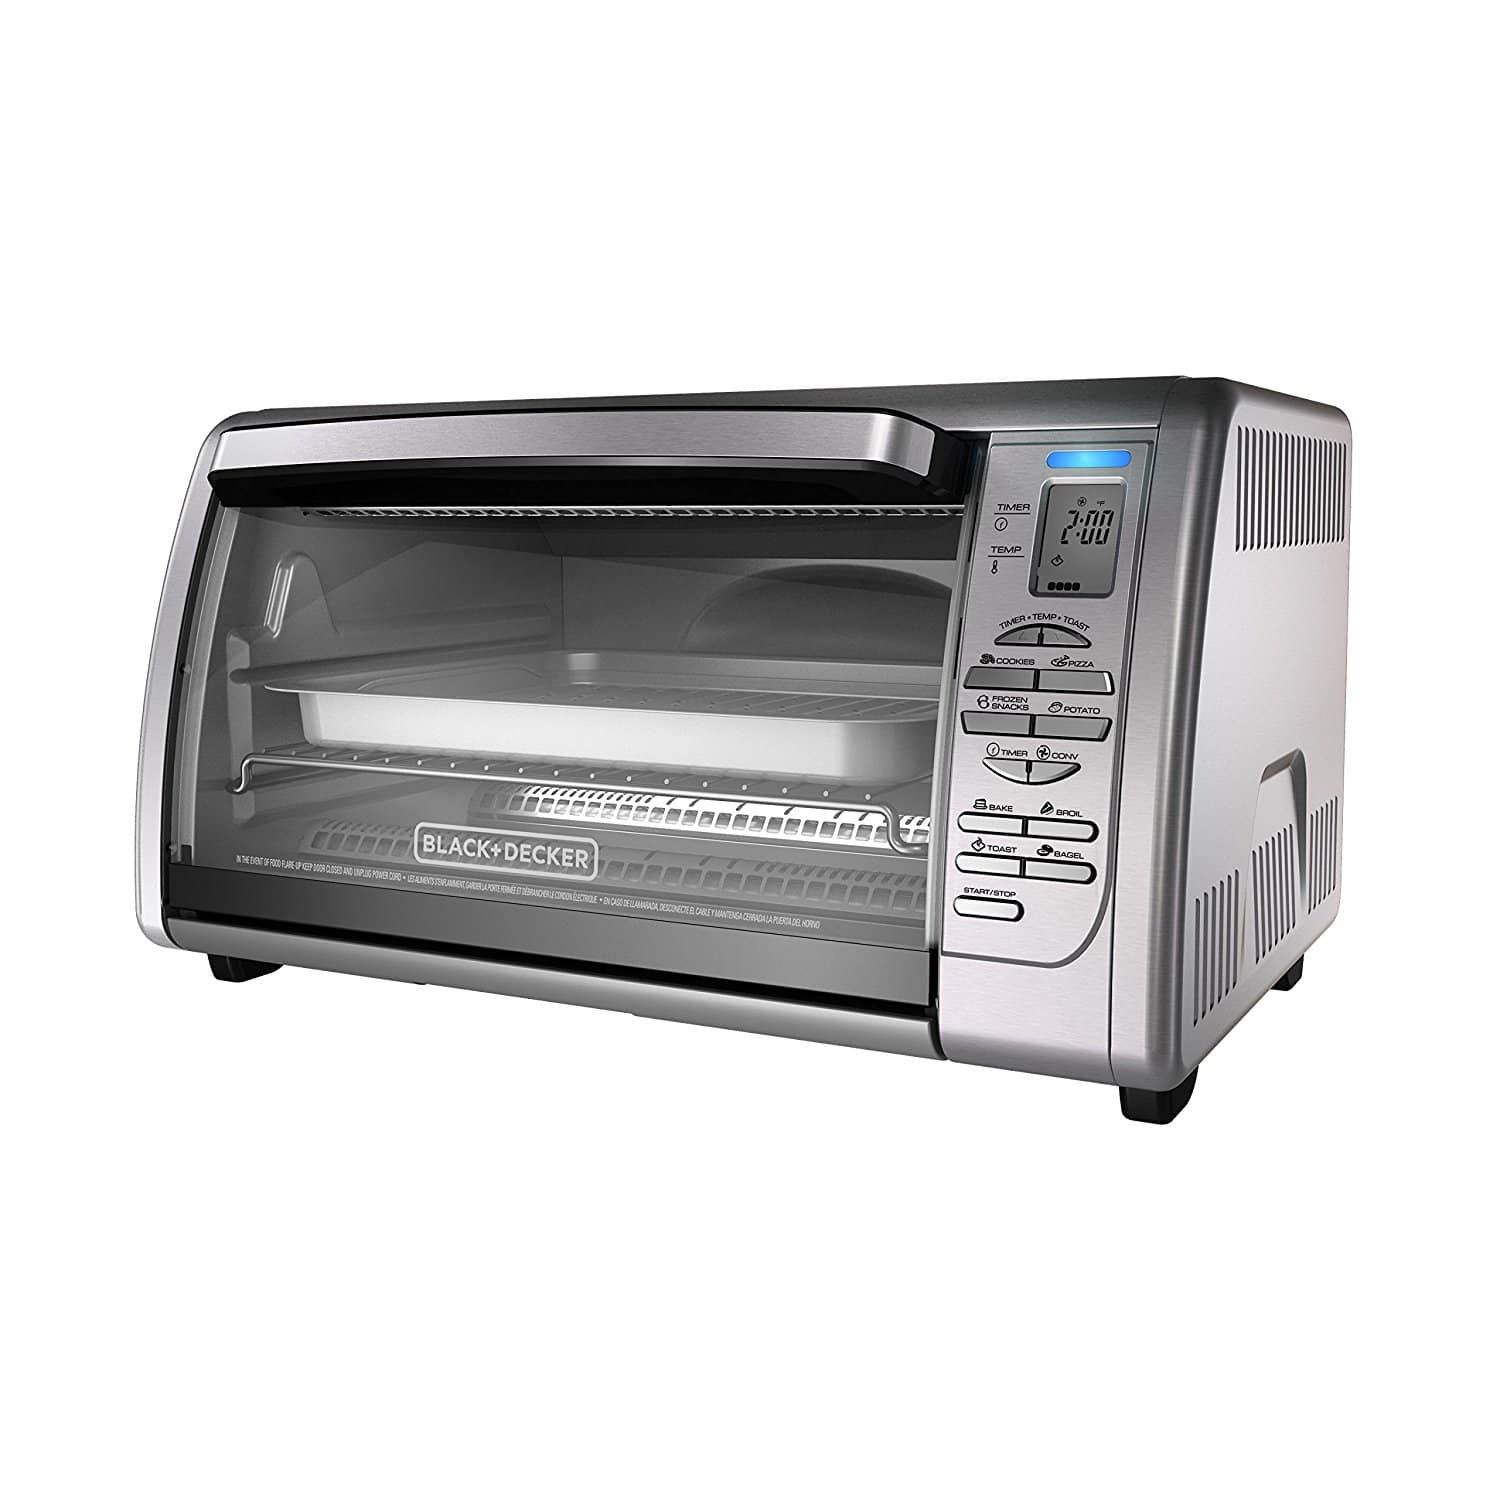 Top 10 Best Oven Toaster In 2020 Hqreview Countertop Oven Best Convection Toaster Oven Toaster Oven